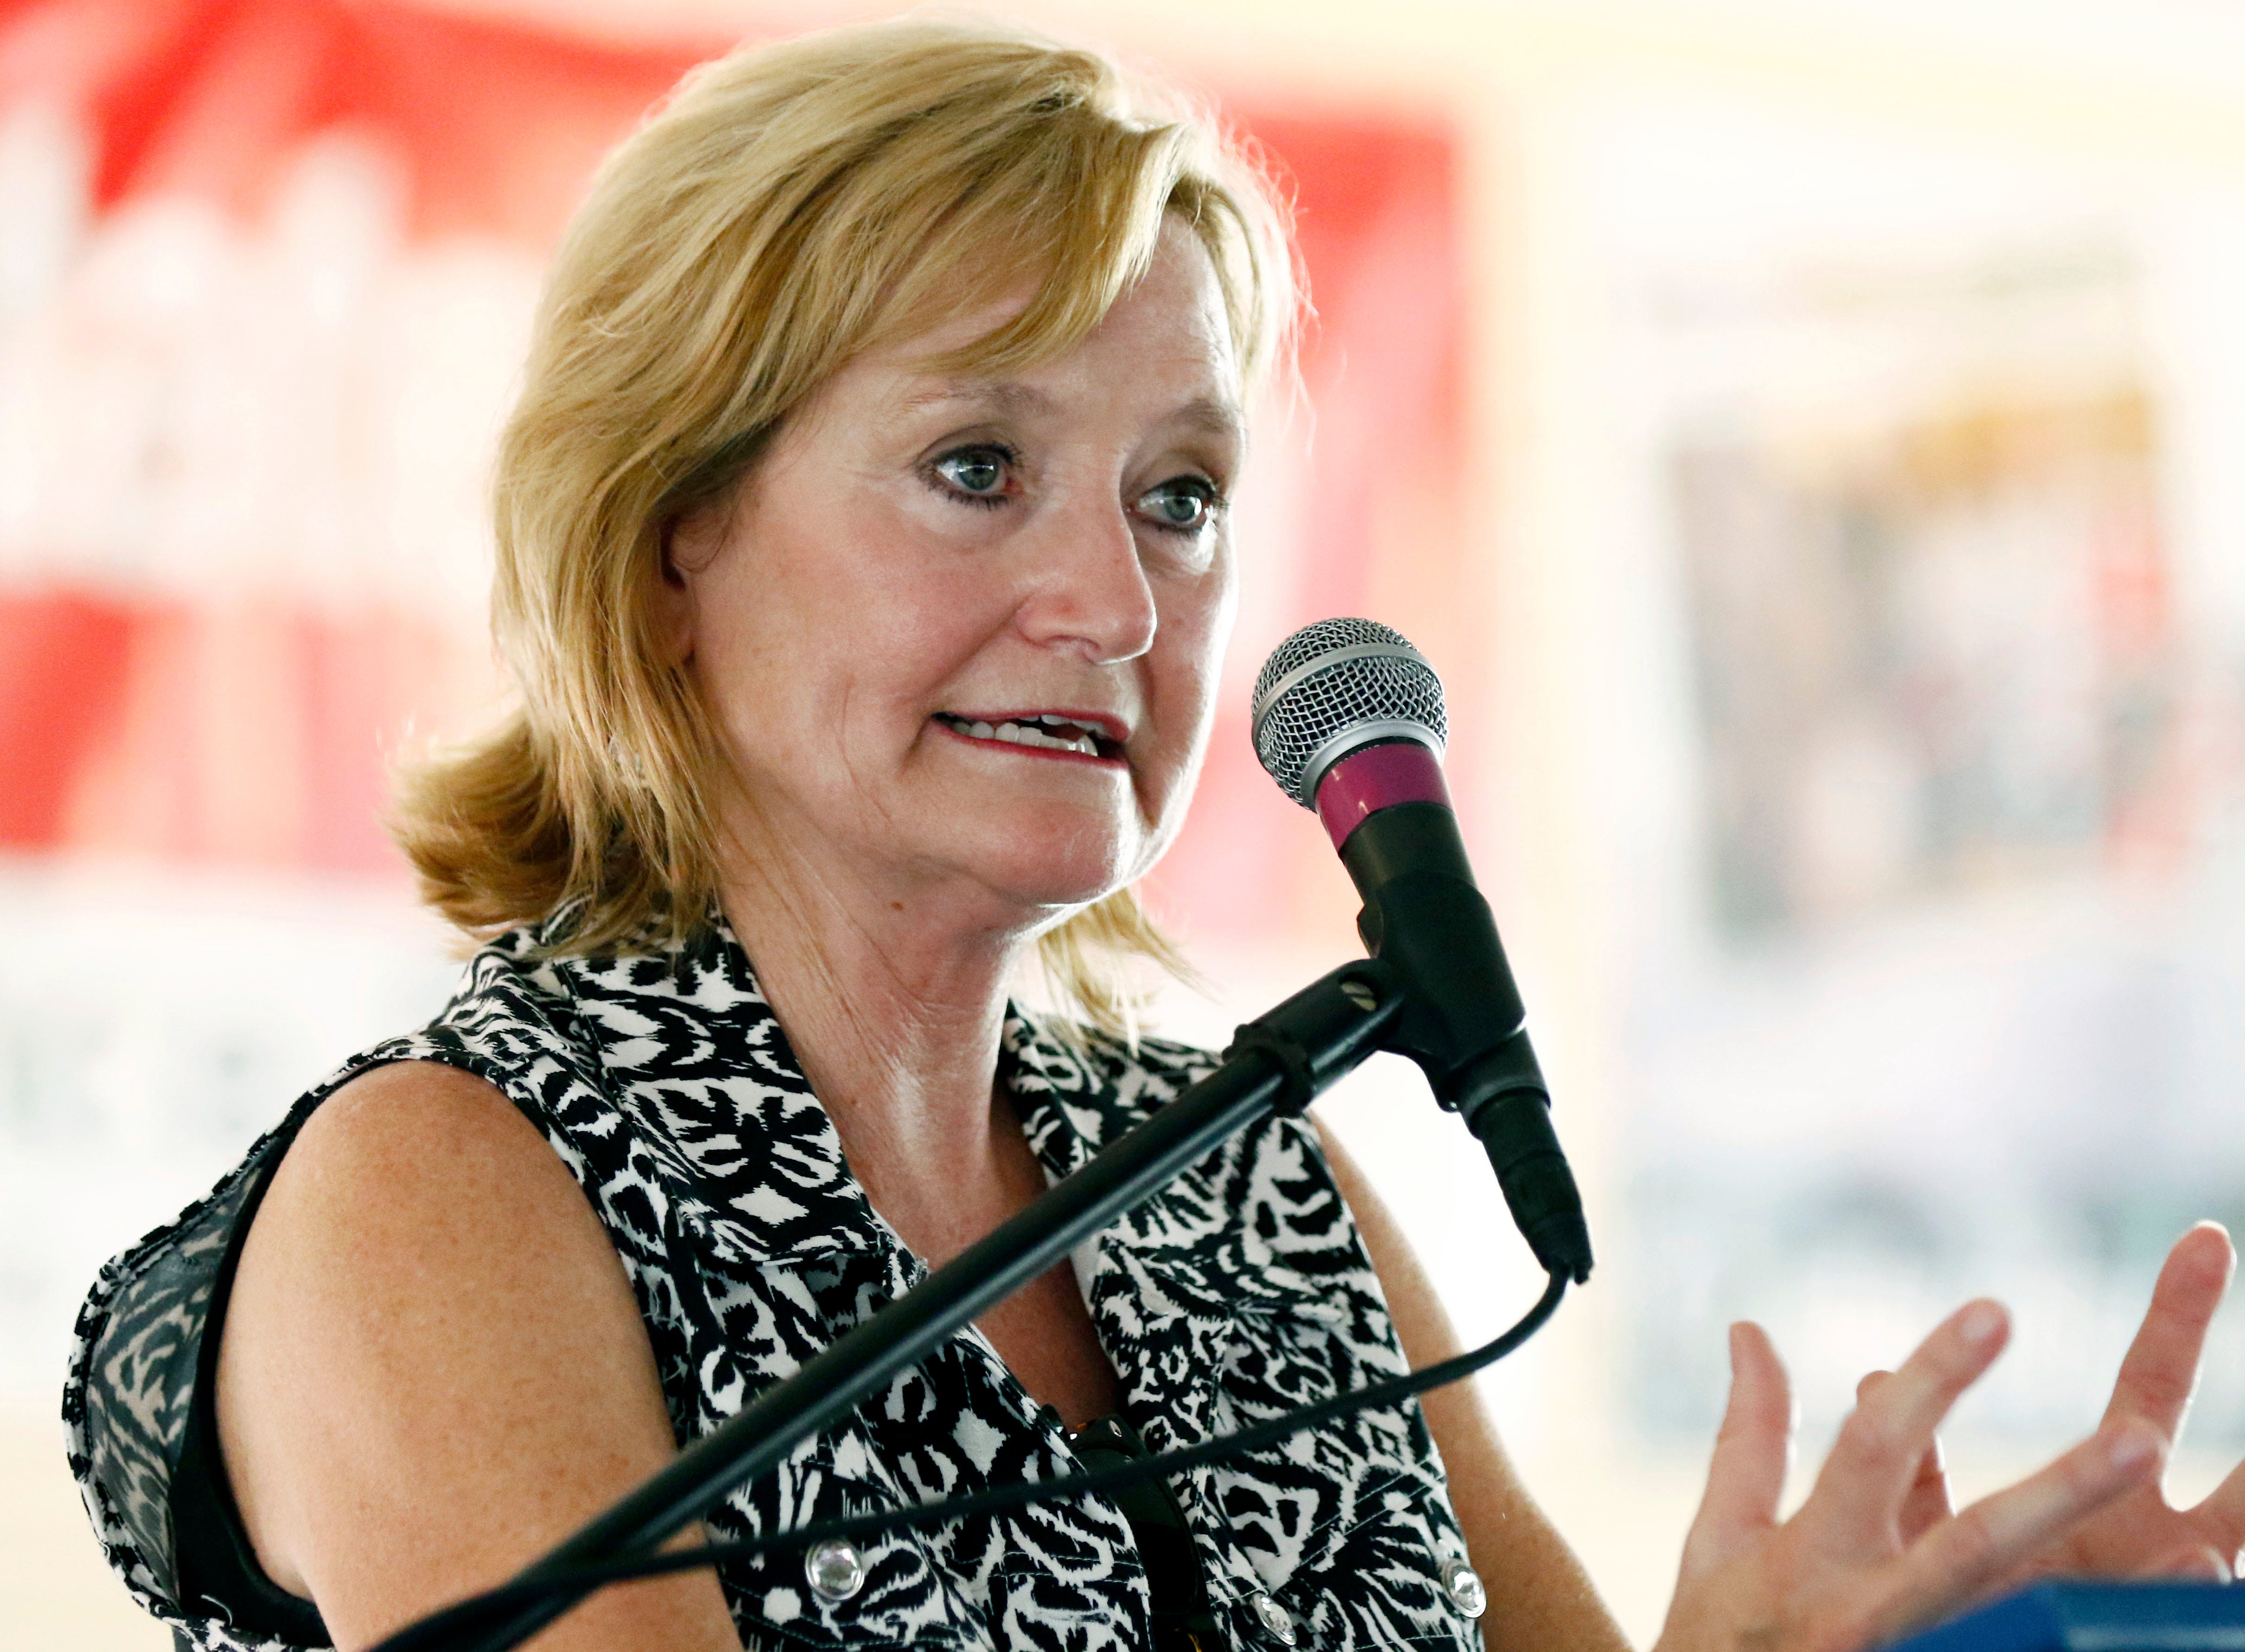 Despite controversies, Cindy Hyde-Smith makes history as first Mississippi woman elected to Congress